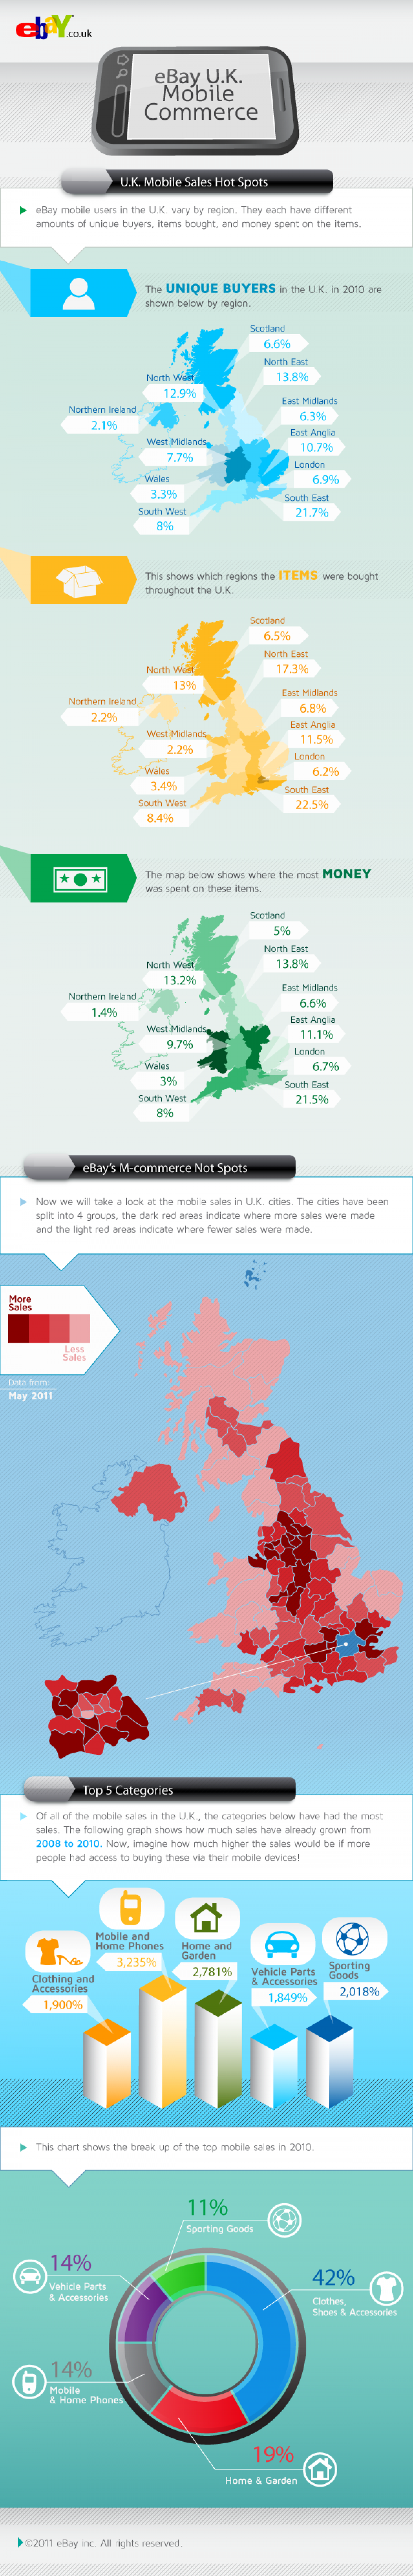 eBay Mobile Commerce in the U.K. Infographic